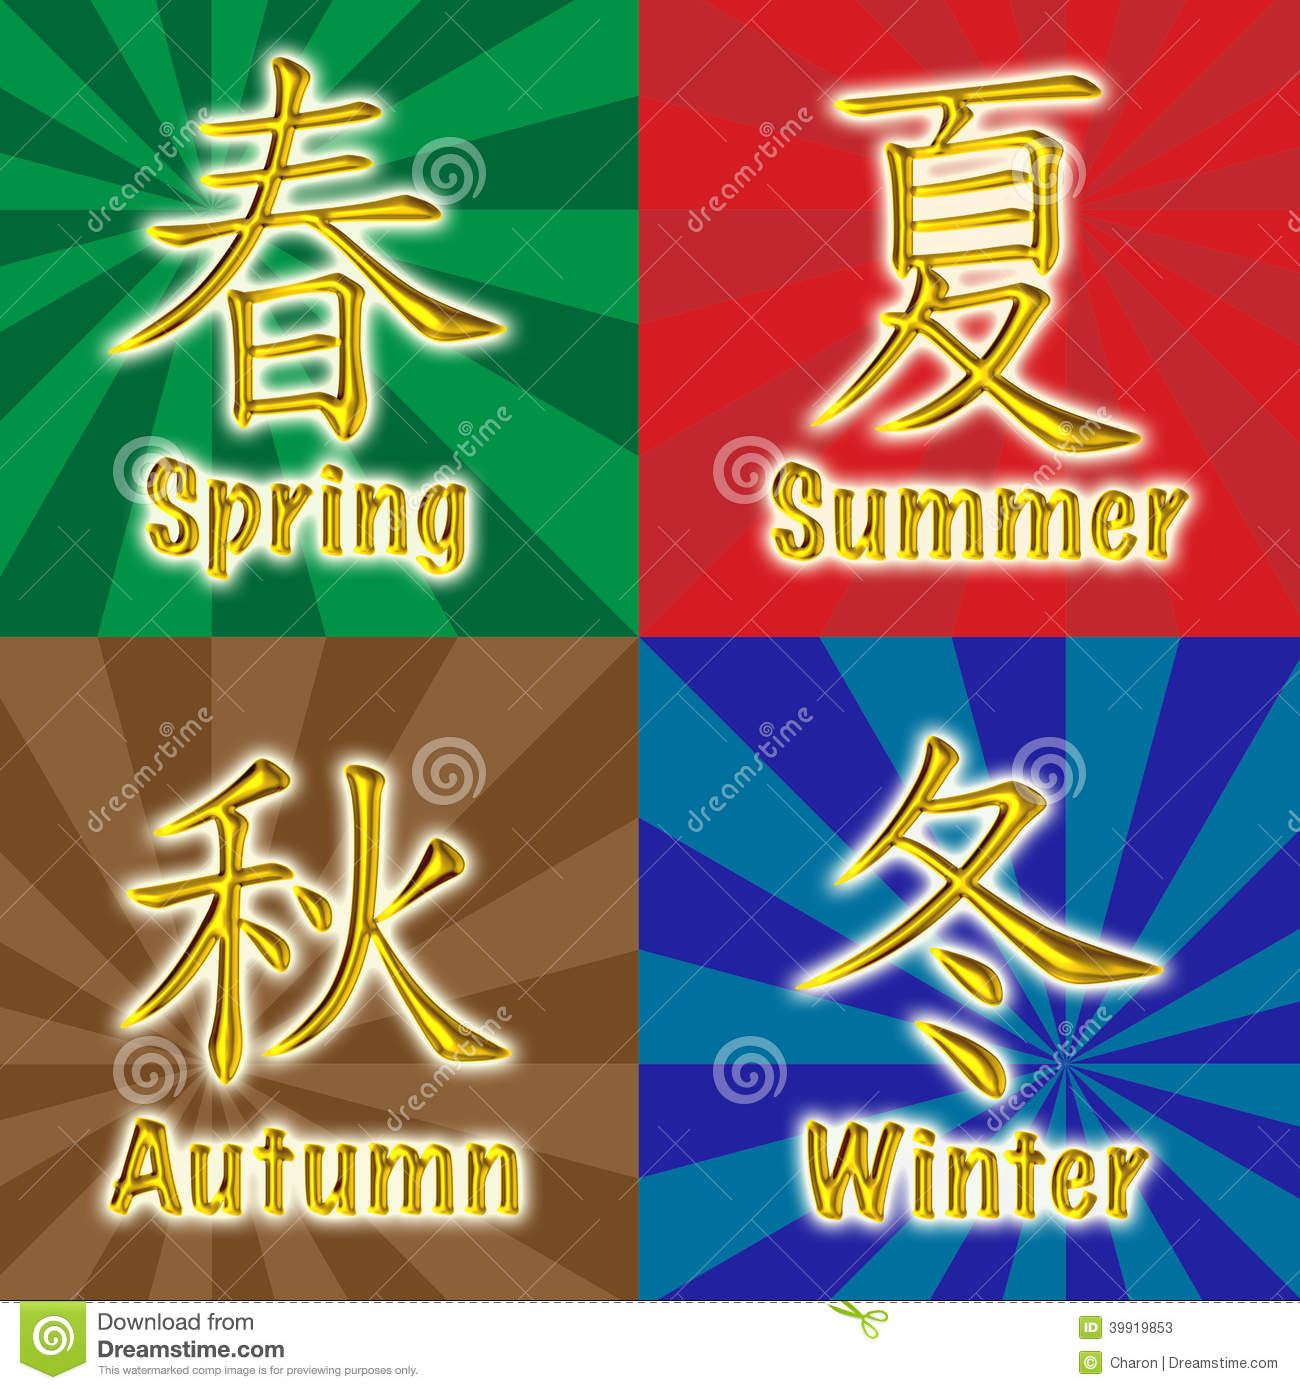 Stock Photos Four Seasons Chinese Golden Characters D Gold Letters Spring Summer Autumn Fall Winter English Word Below Season Design Image39919853 on Time Management Worksheet